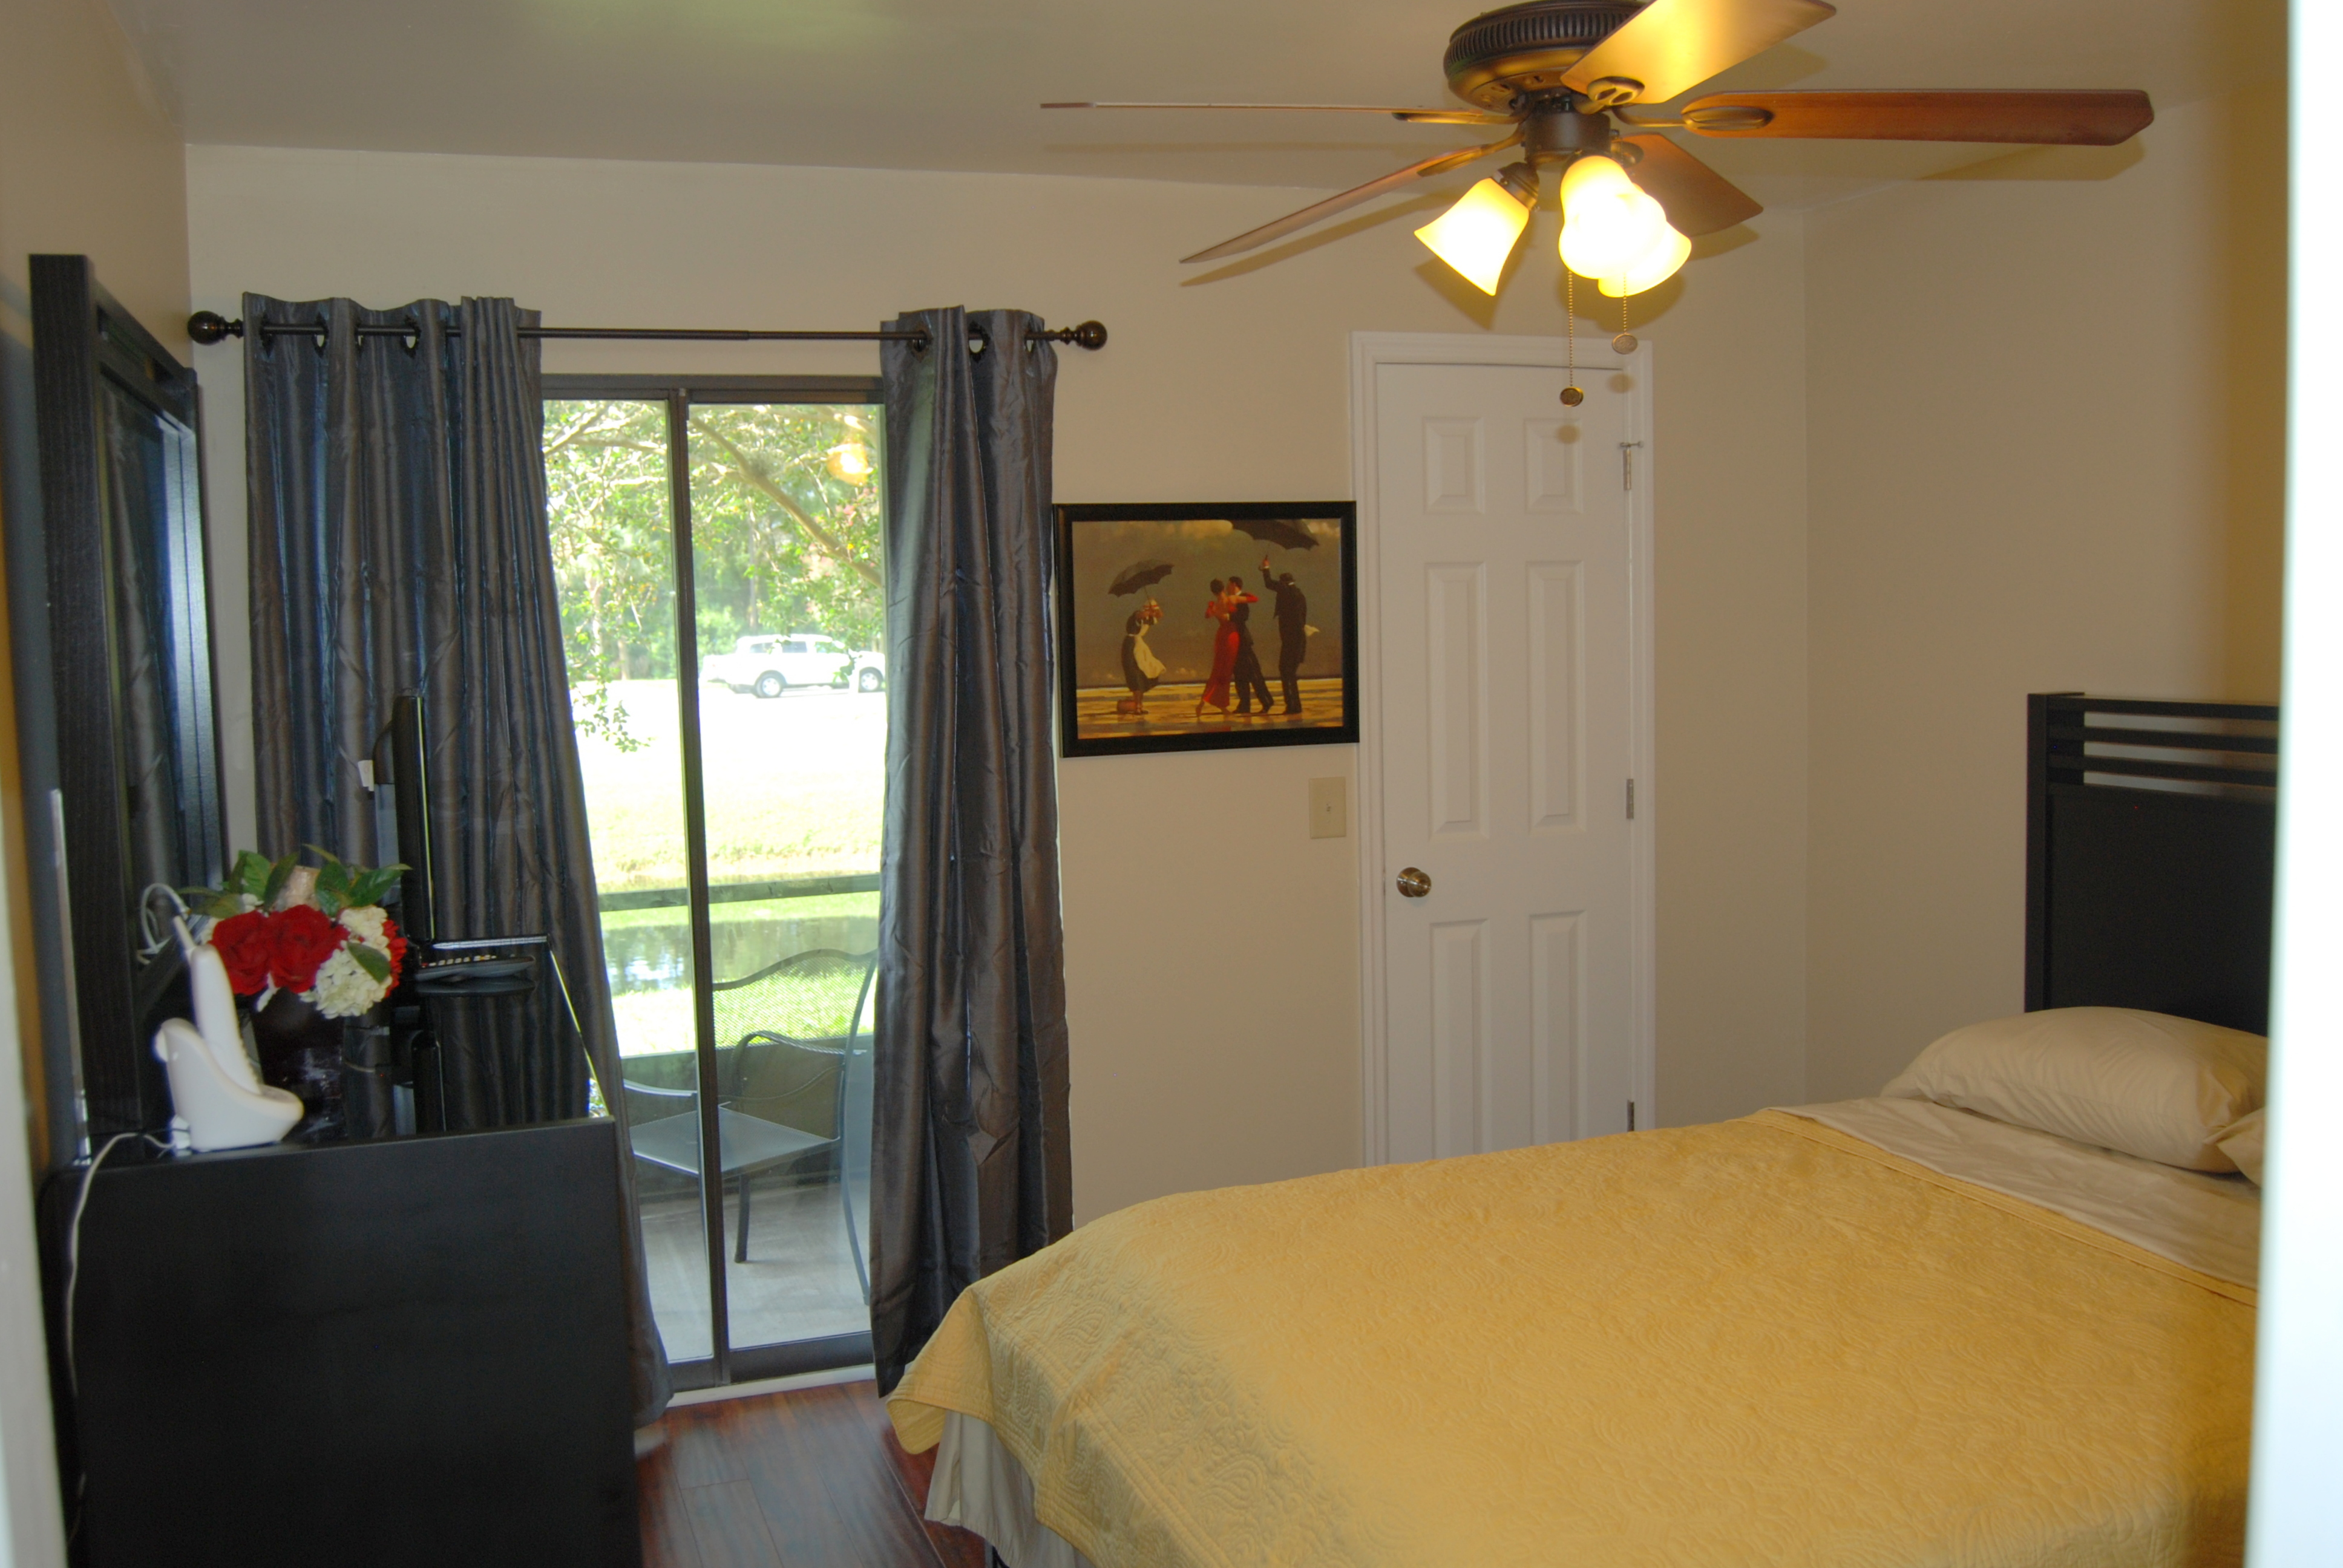 Short Term Housing - The Master Bedroom